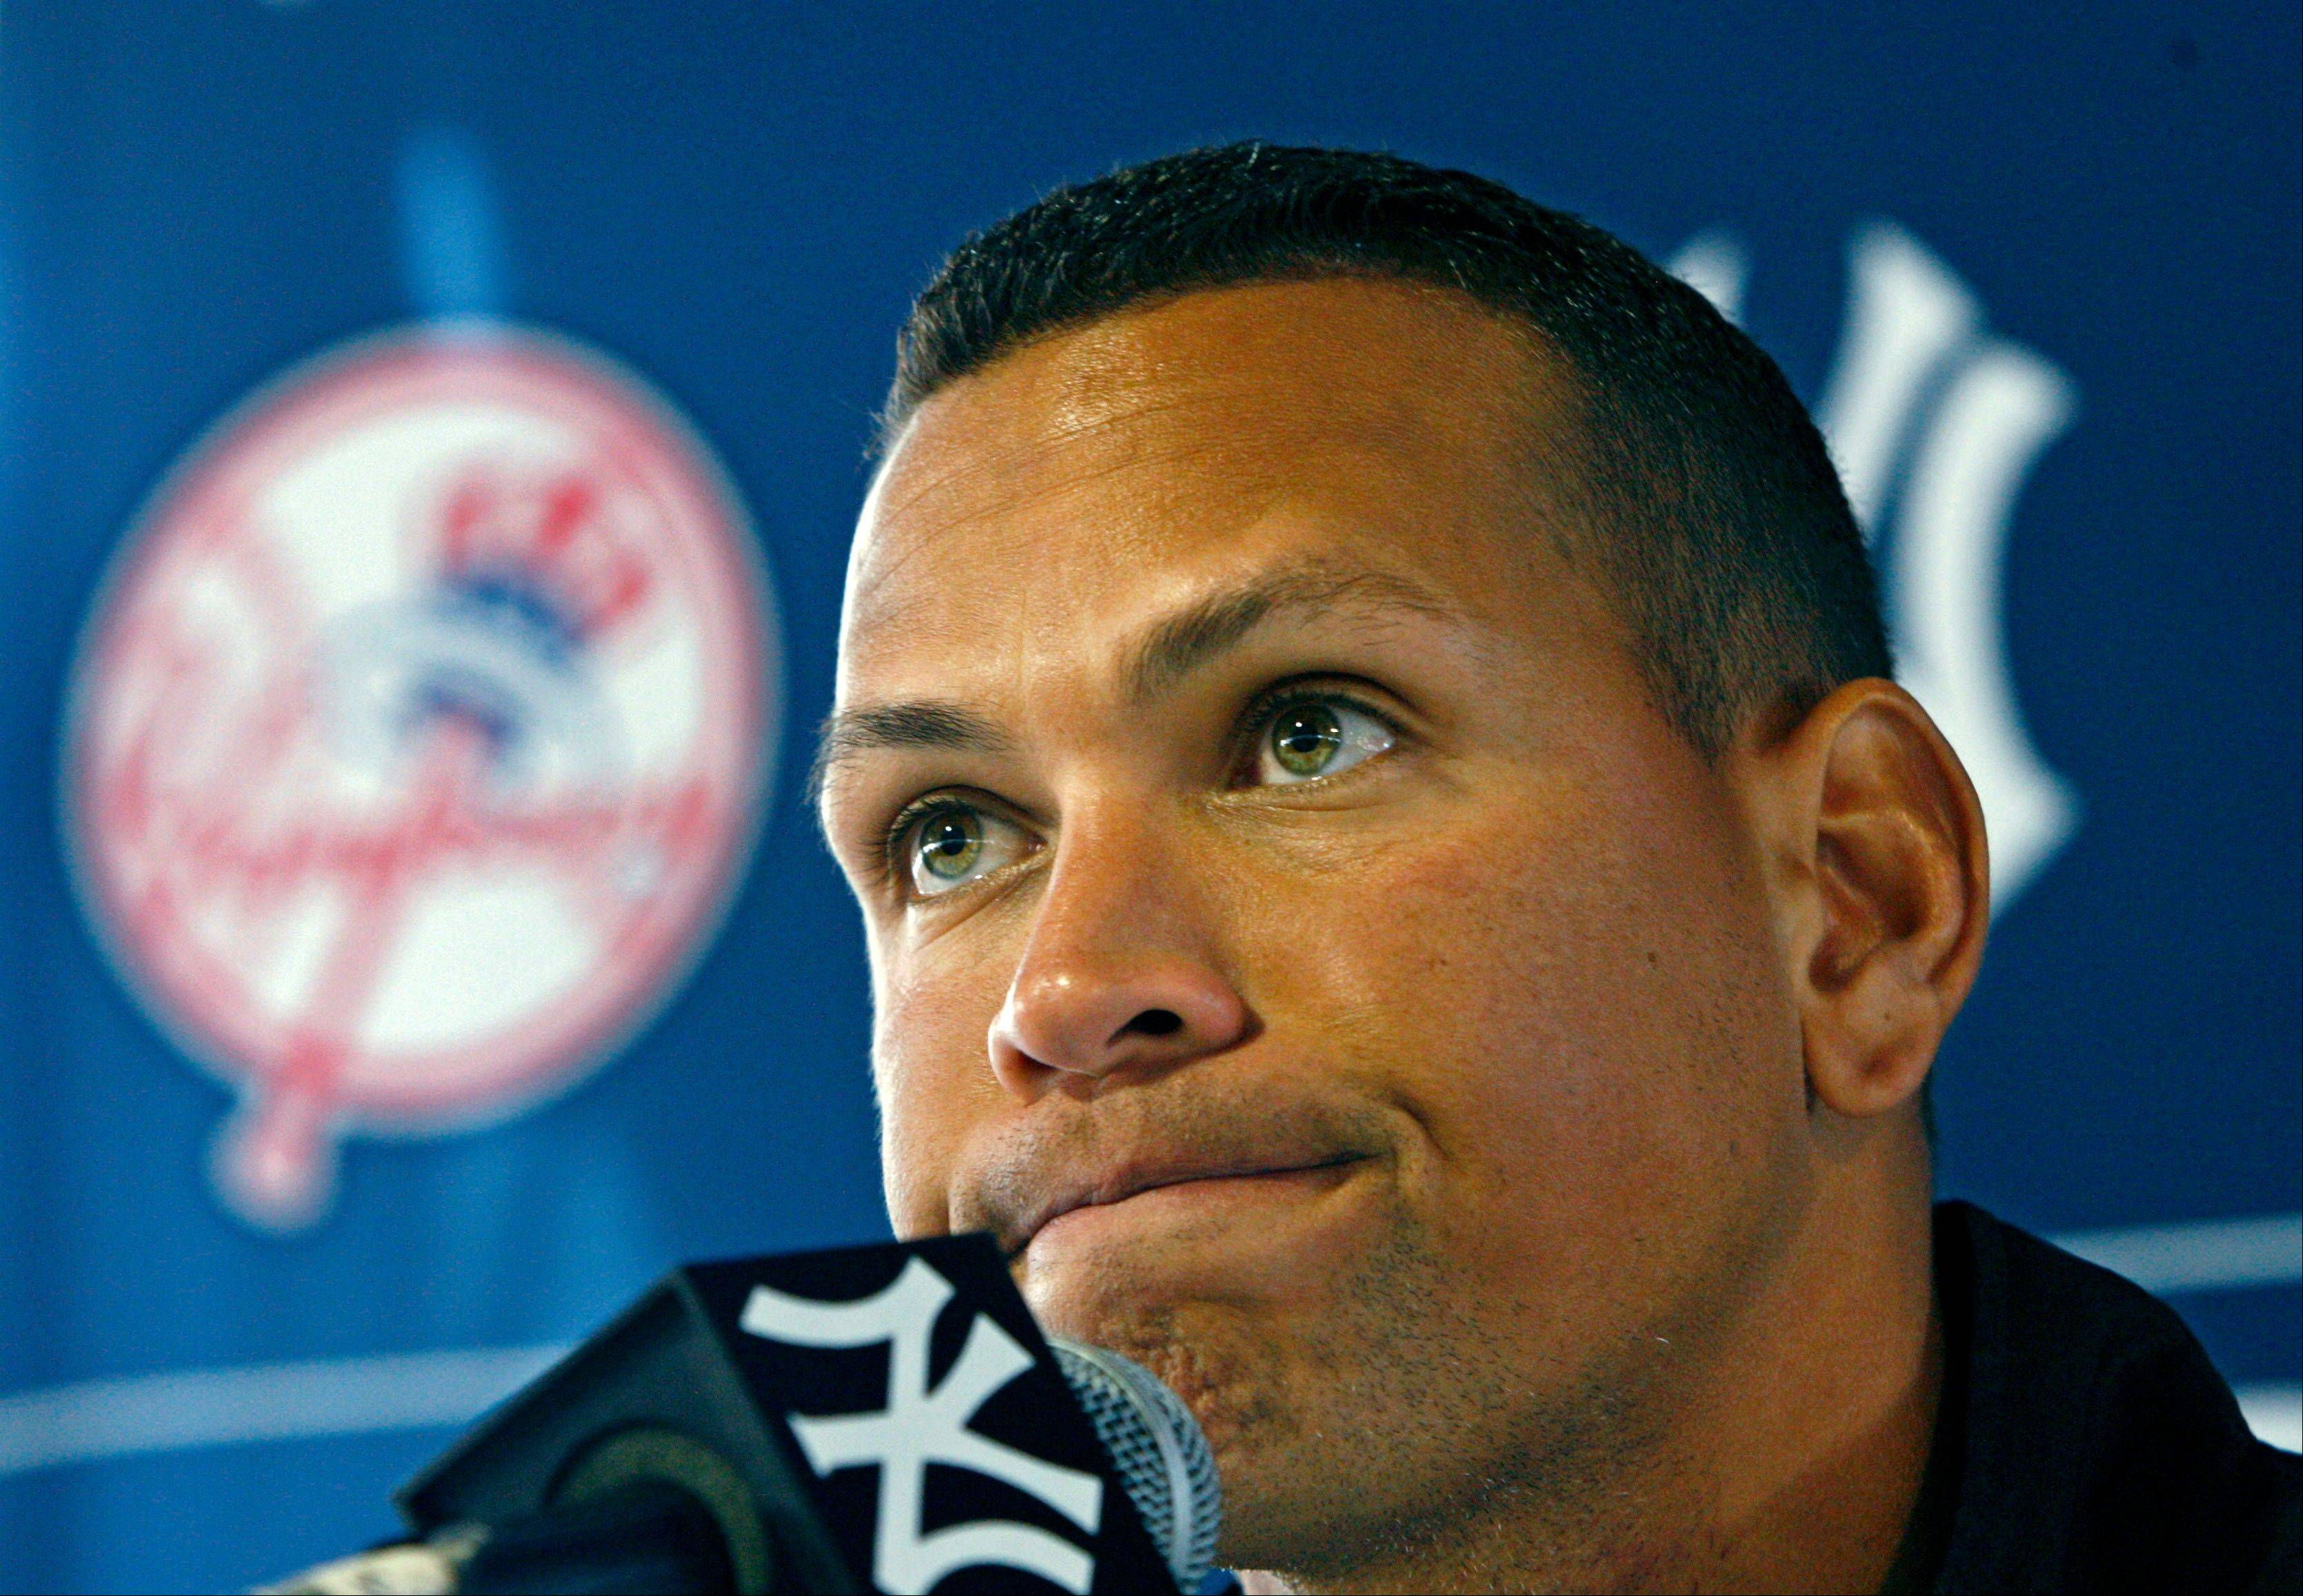 In this Feb. 25, 2010, file photo, New York Yankees' Alex Rodriguez speaks at a news conference during baseball spring training at Steinbrenner Field in Tampa, Fla.�Major League Baseball has told the union which players it intends to suspend in its drug investigation and which ones will receive lengthier penalties for their roles in the Biogenesis case.